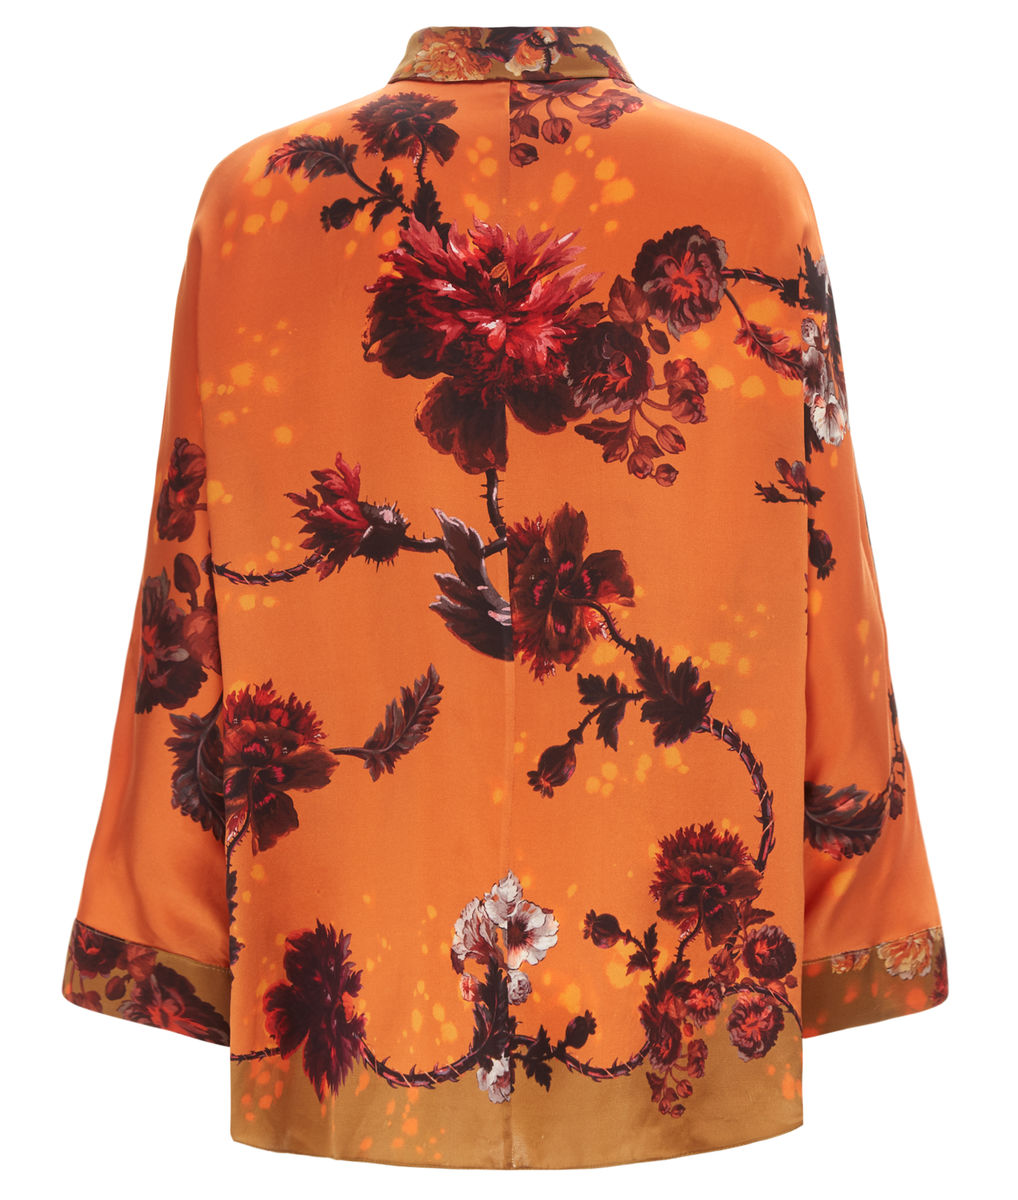 Escapist Shirt in Gothic Floral Print (Ochre) - product images  of